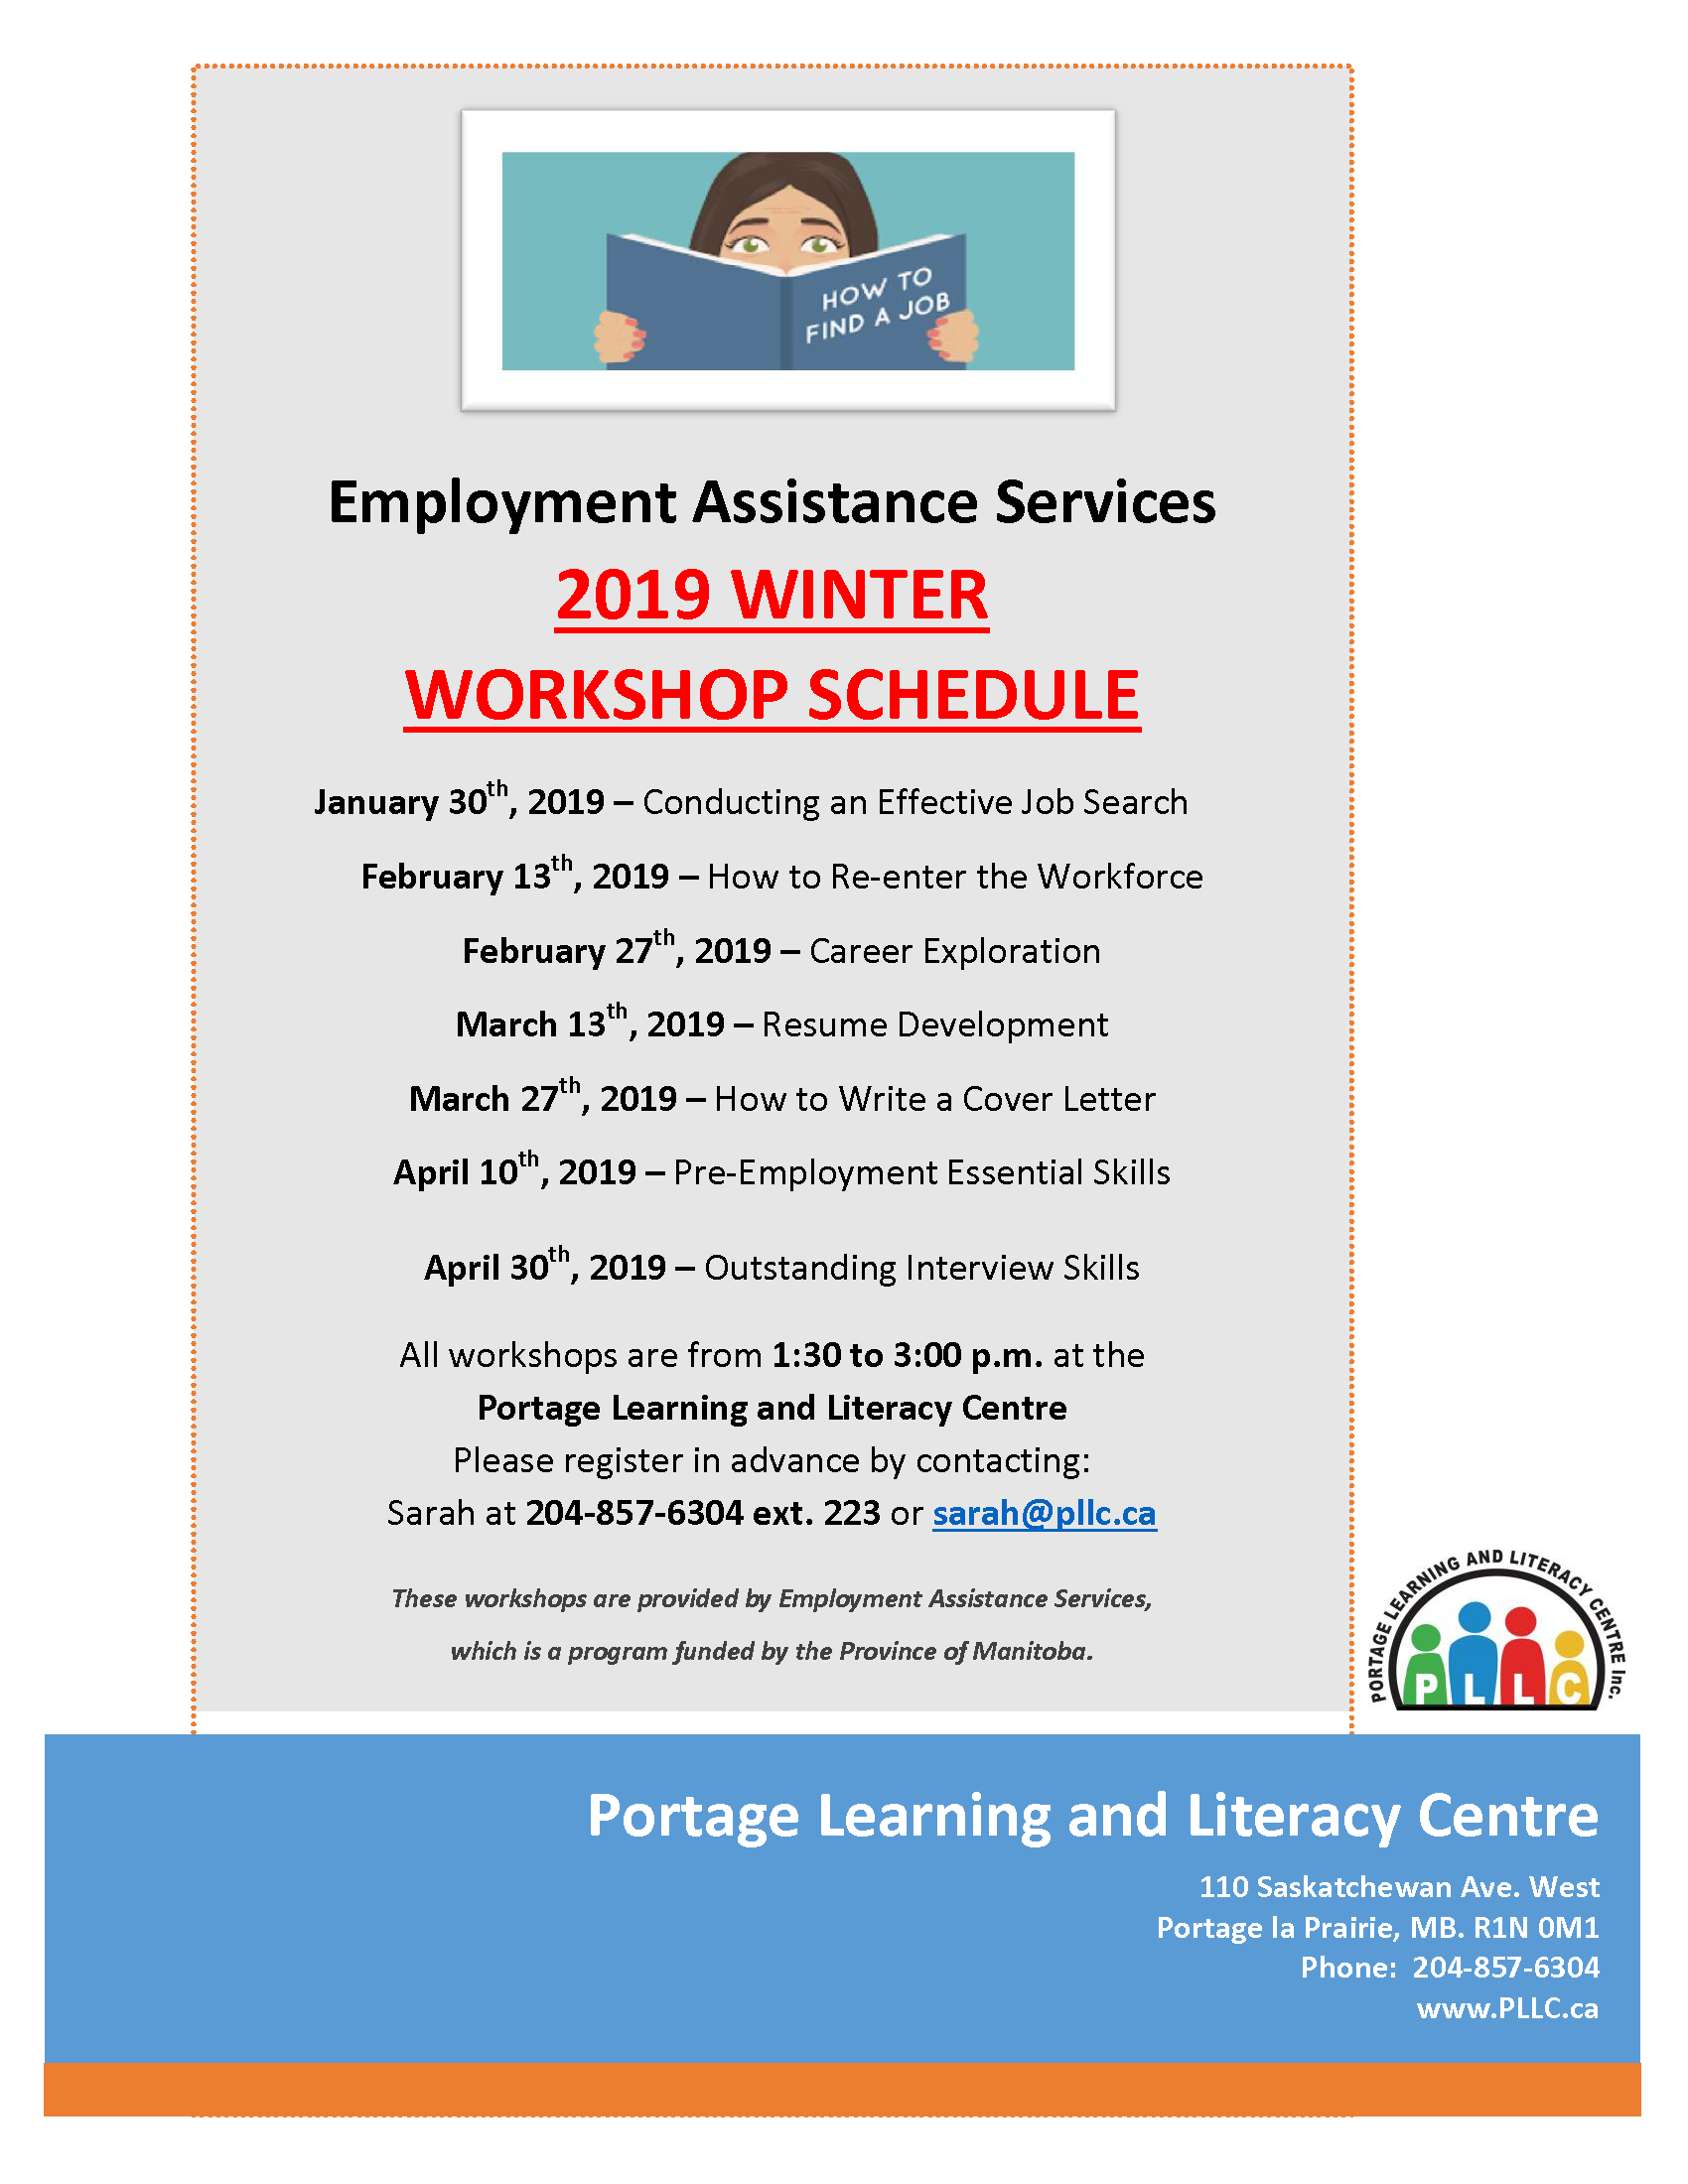 Employment Assistance Services | Portage Learning and Literacy Centre